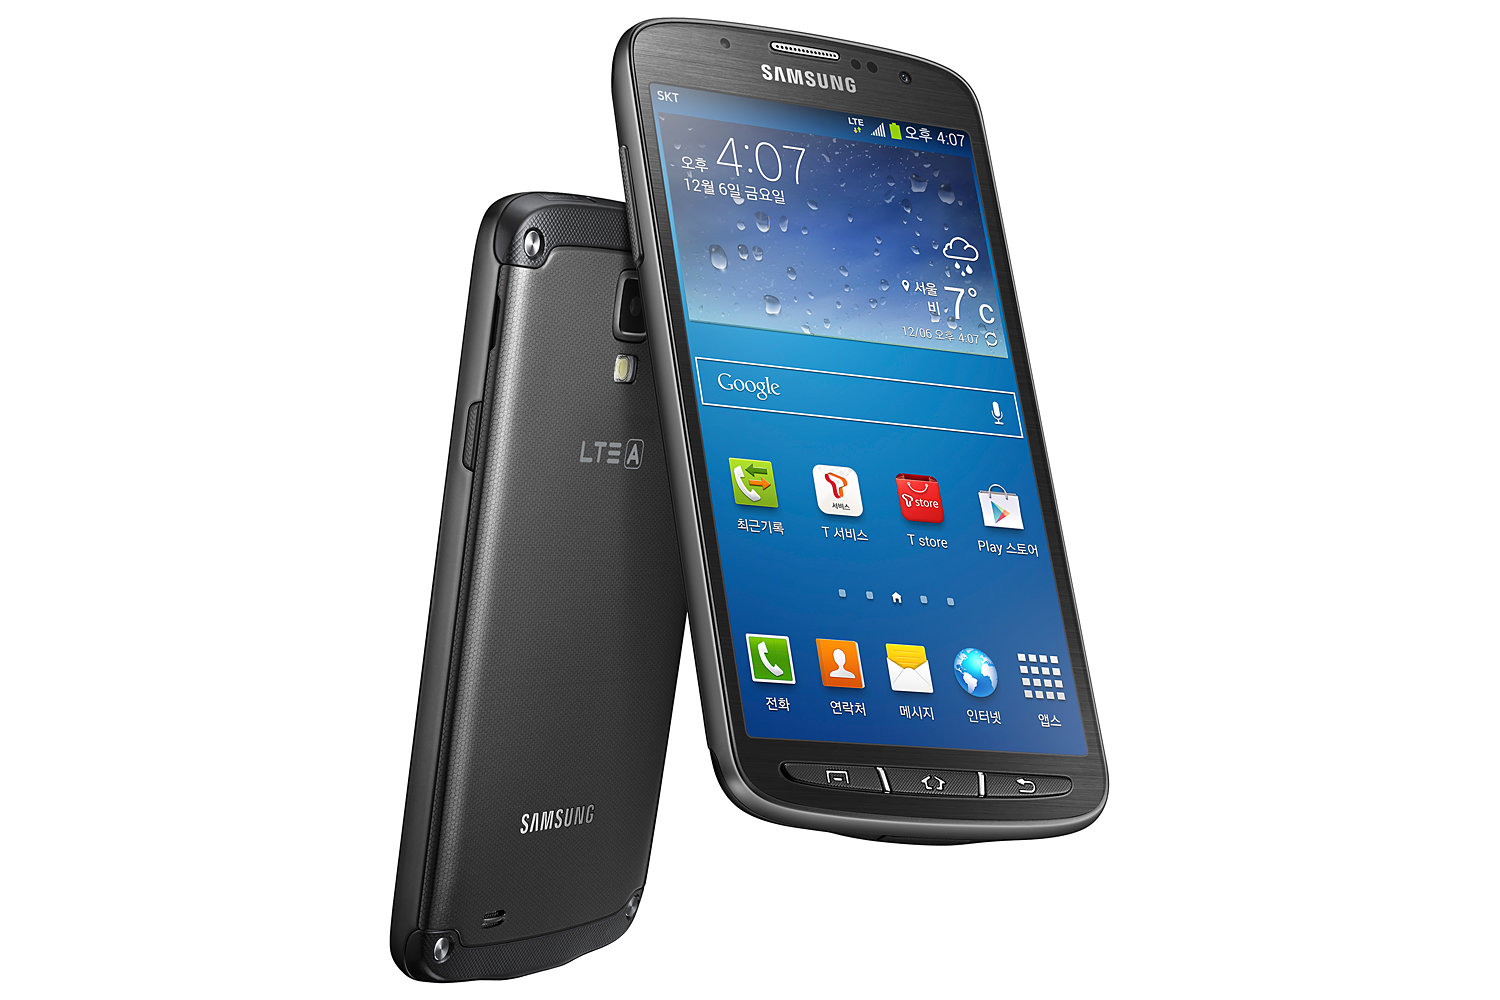 Samsung Galaxy S4 Active LTE-A - Omega Gadget 5